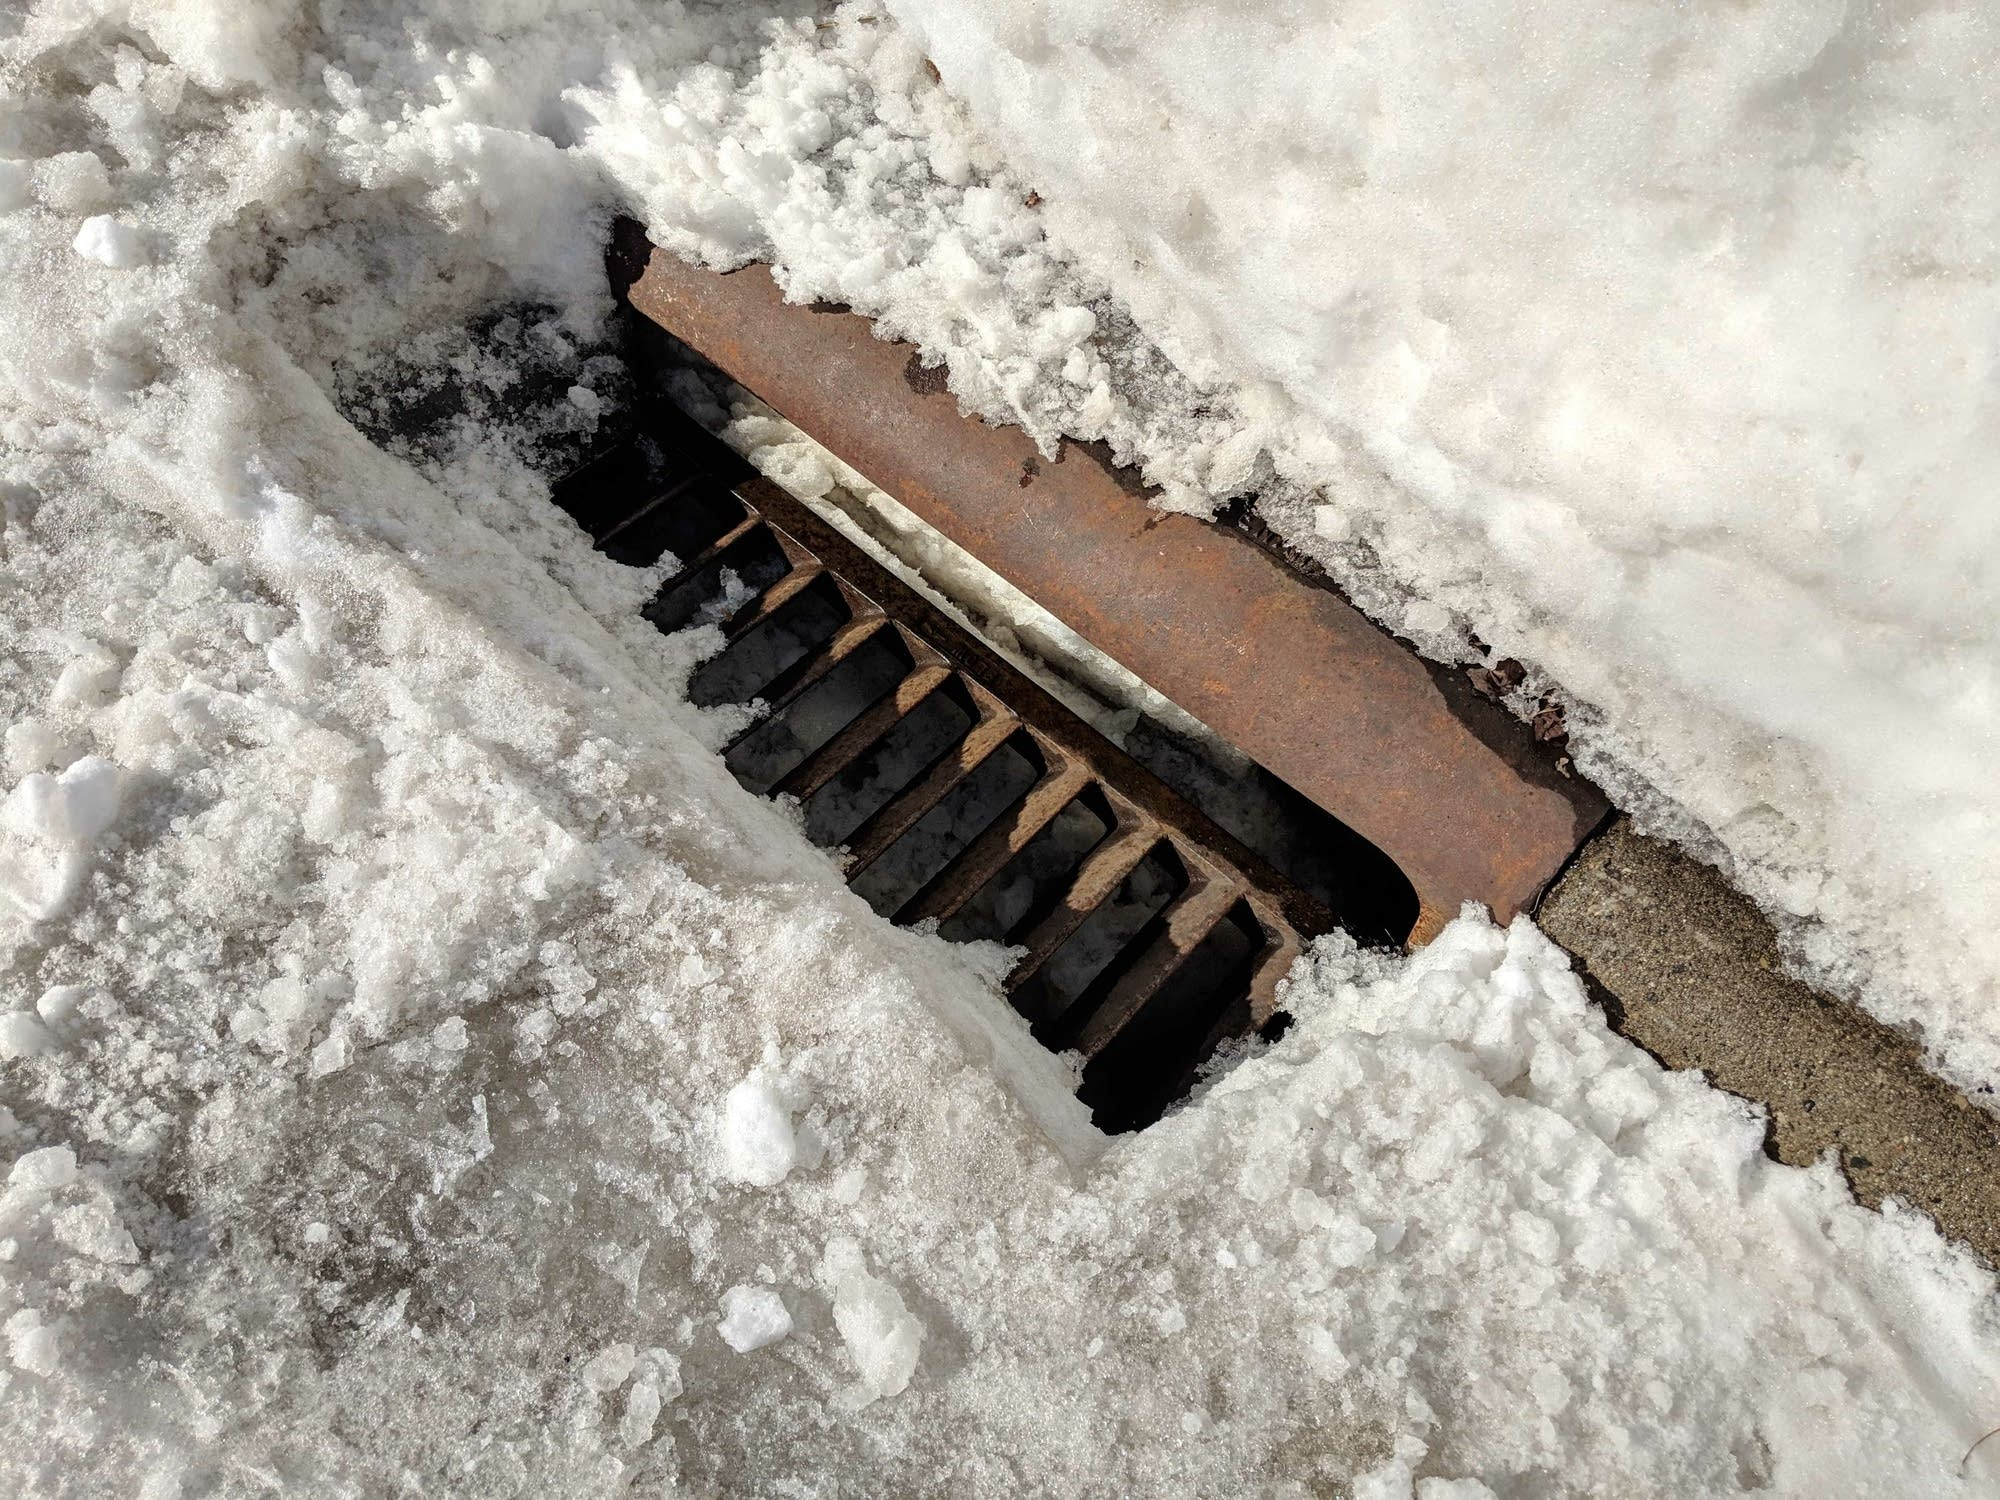 A storm drain catch basin on Fairmount Avenue in St. Paul is full of snow.